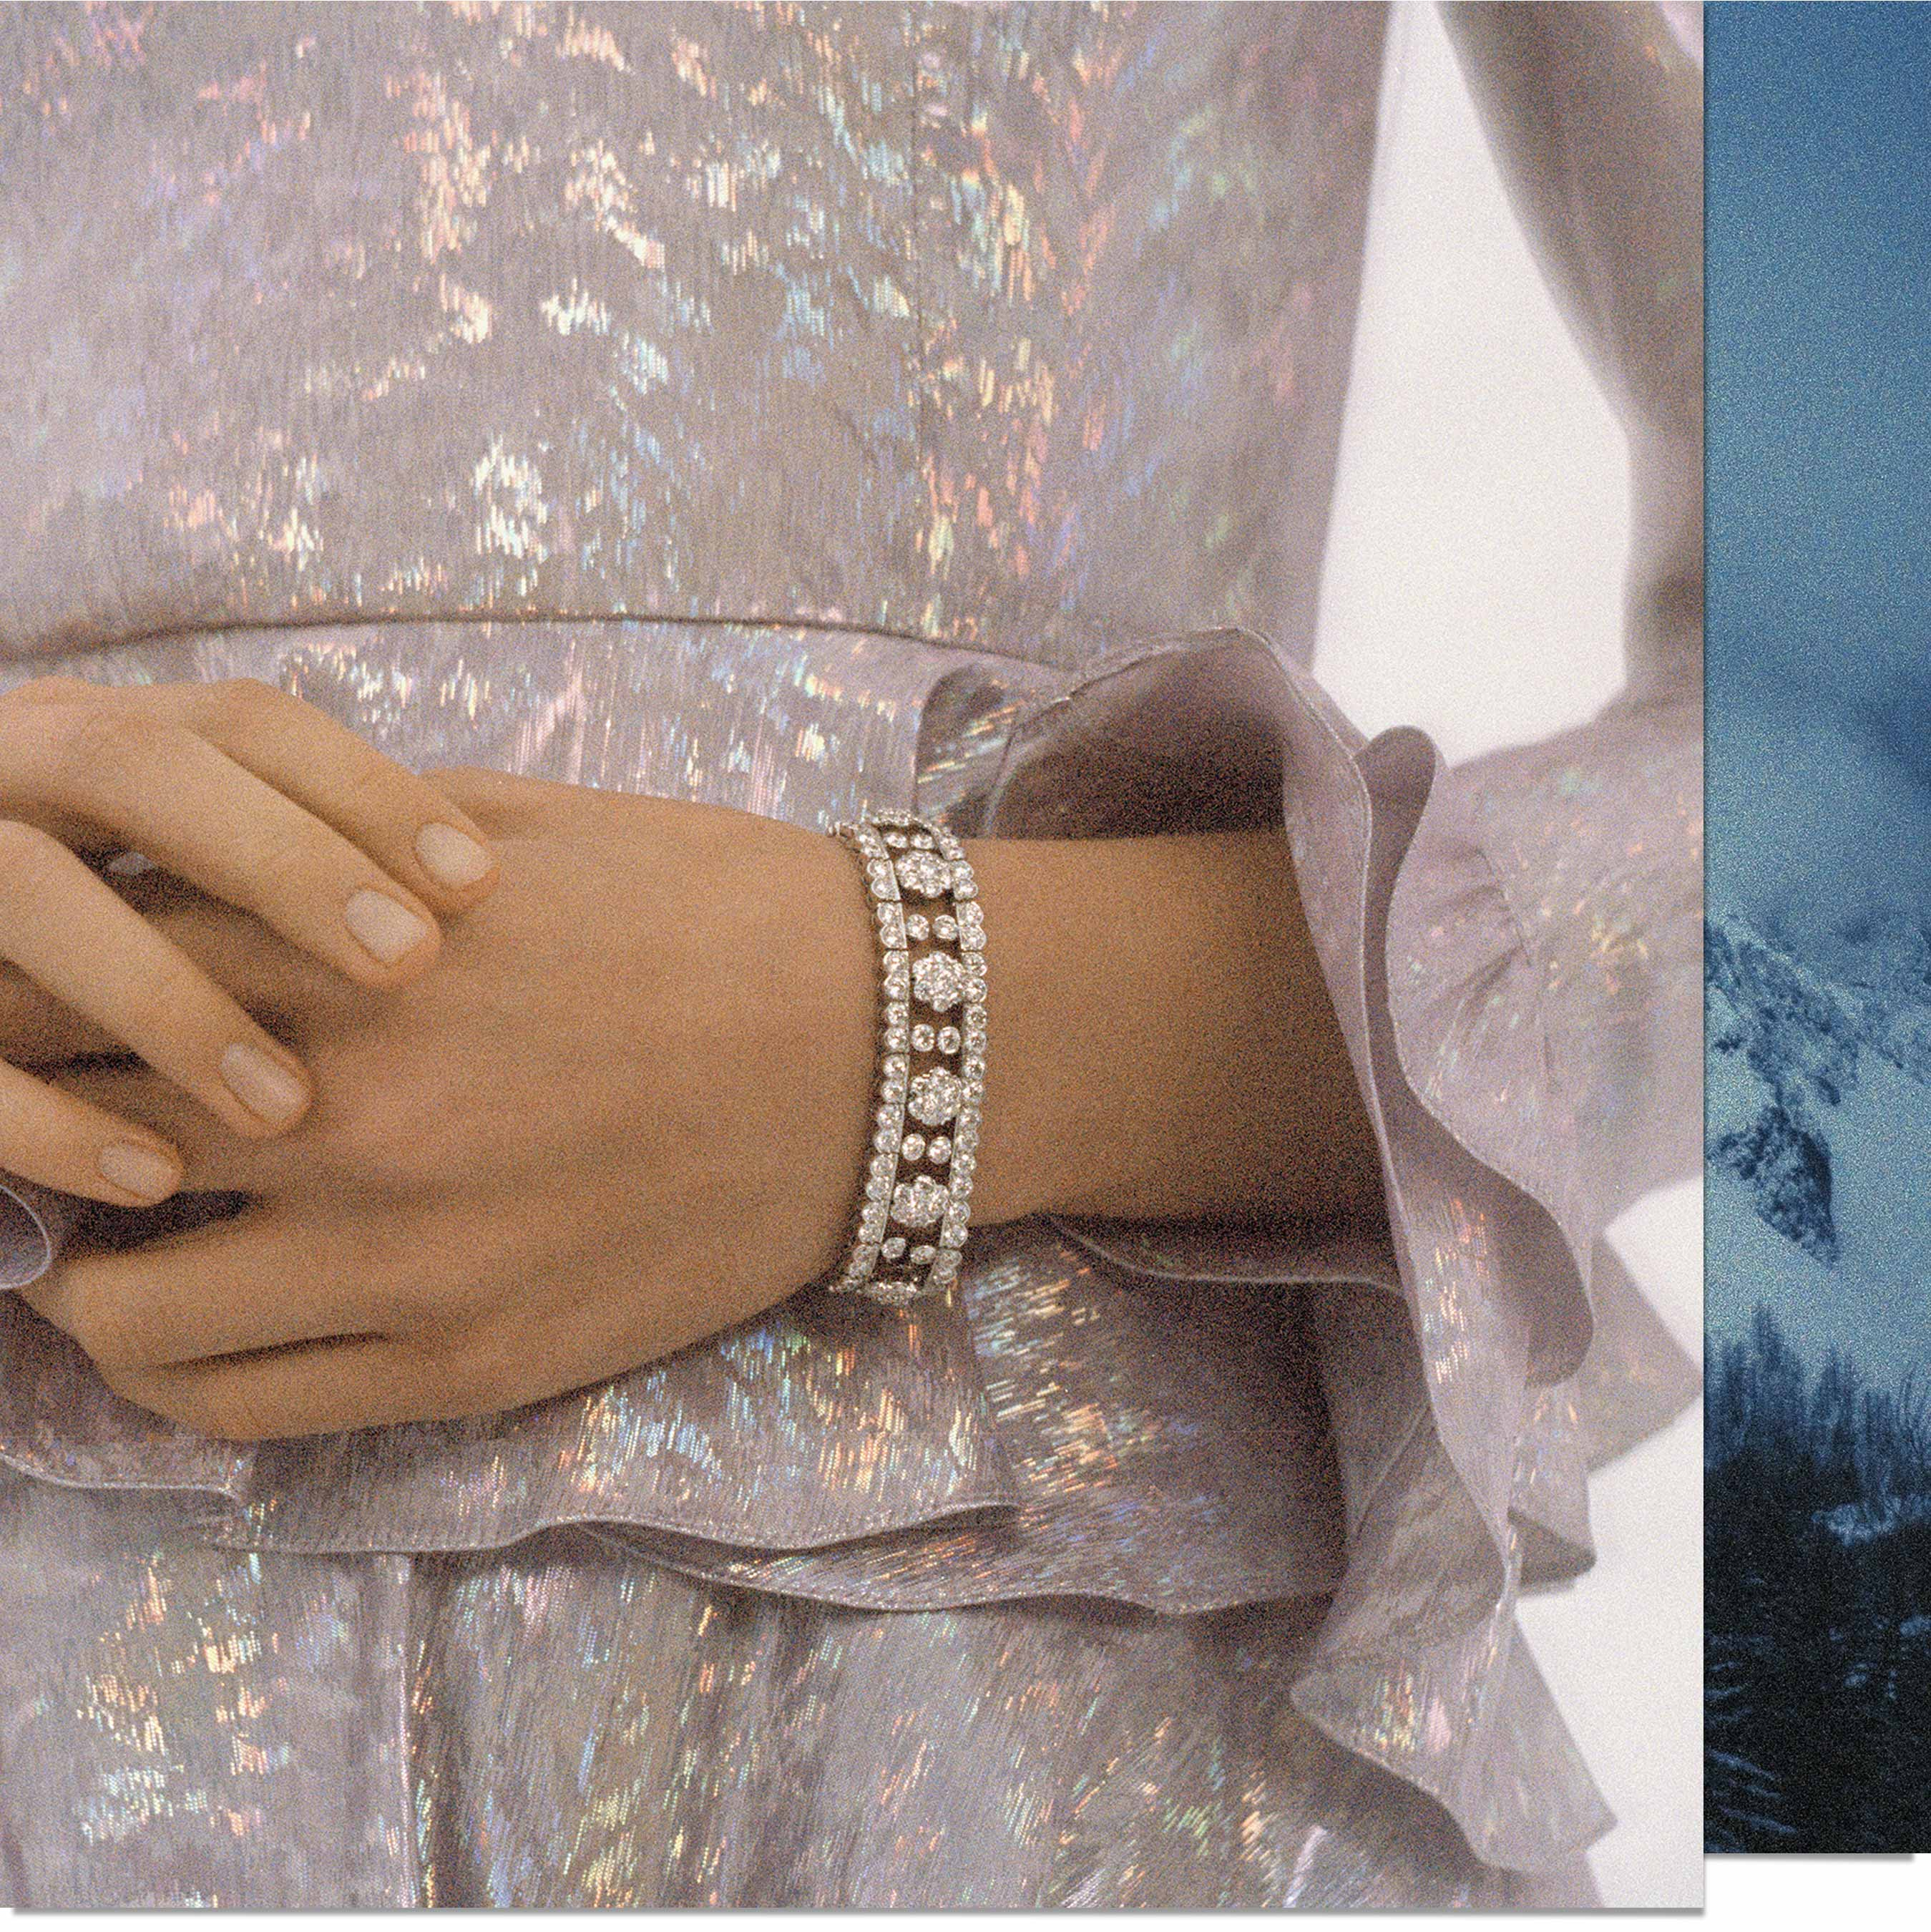 Snowflake collection seen by photographer Olivia Bee, Van Cleef & Arpels